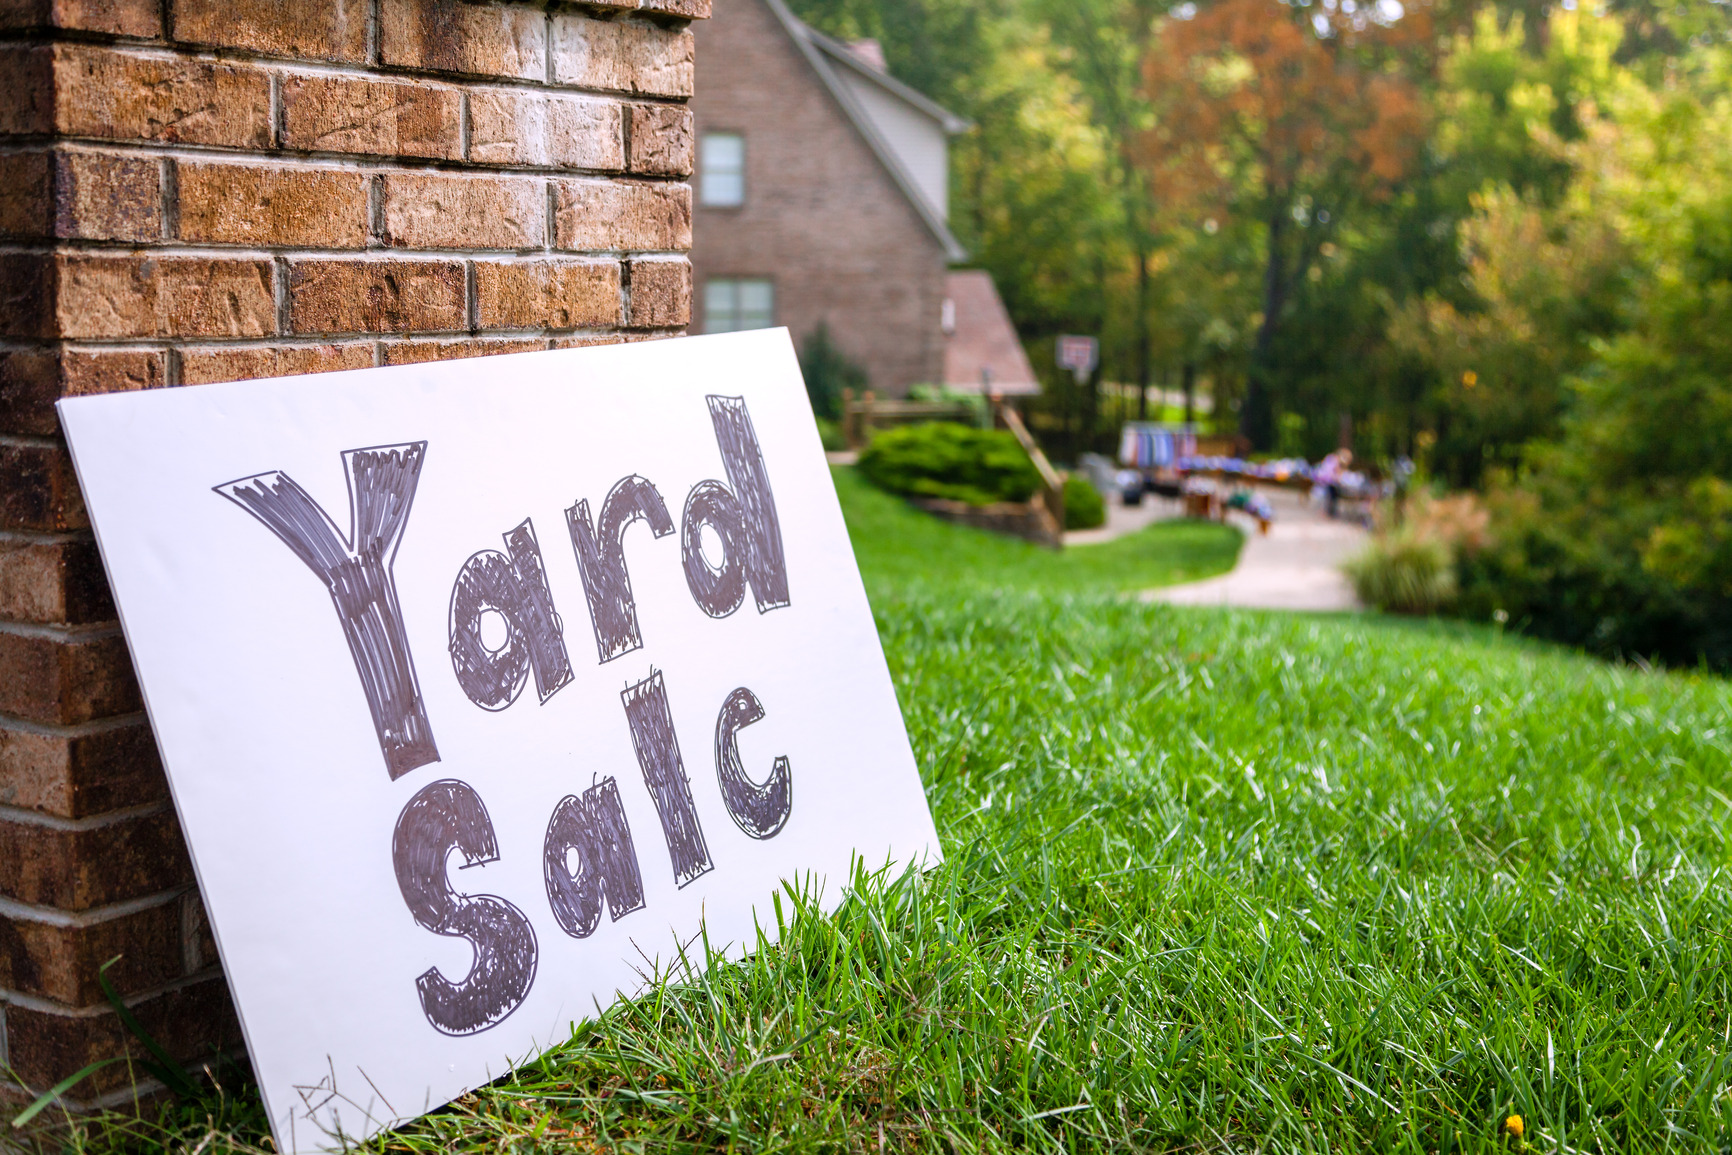 The Ultimate Yard Sale Kit